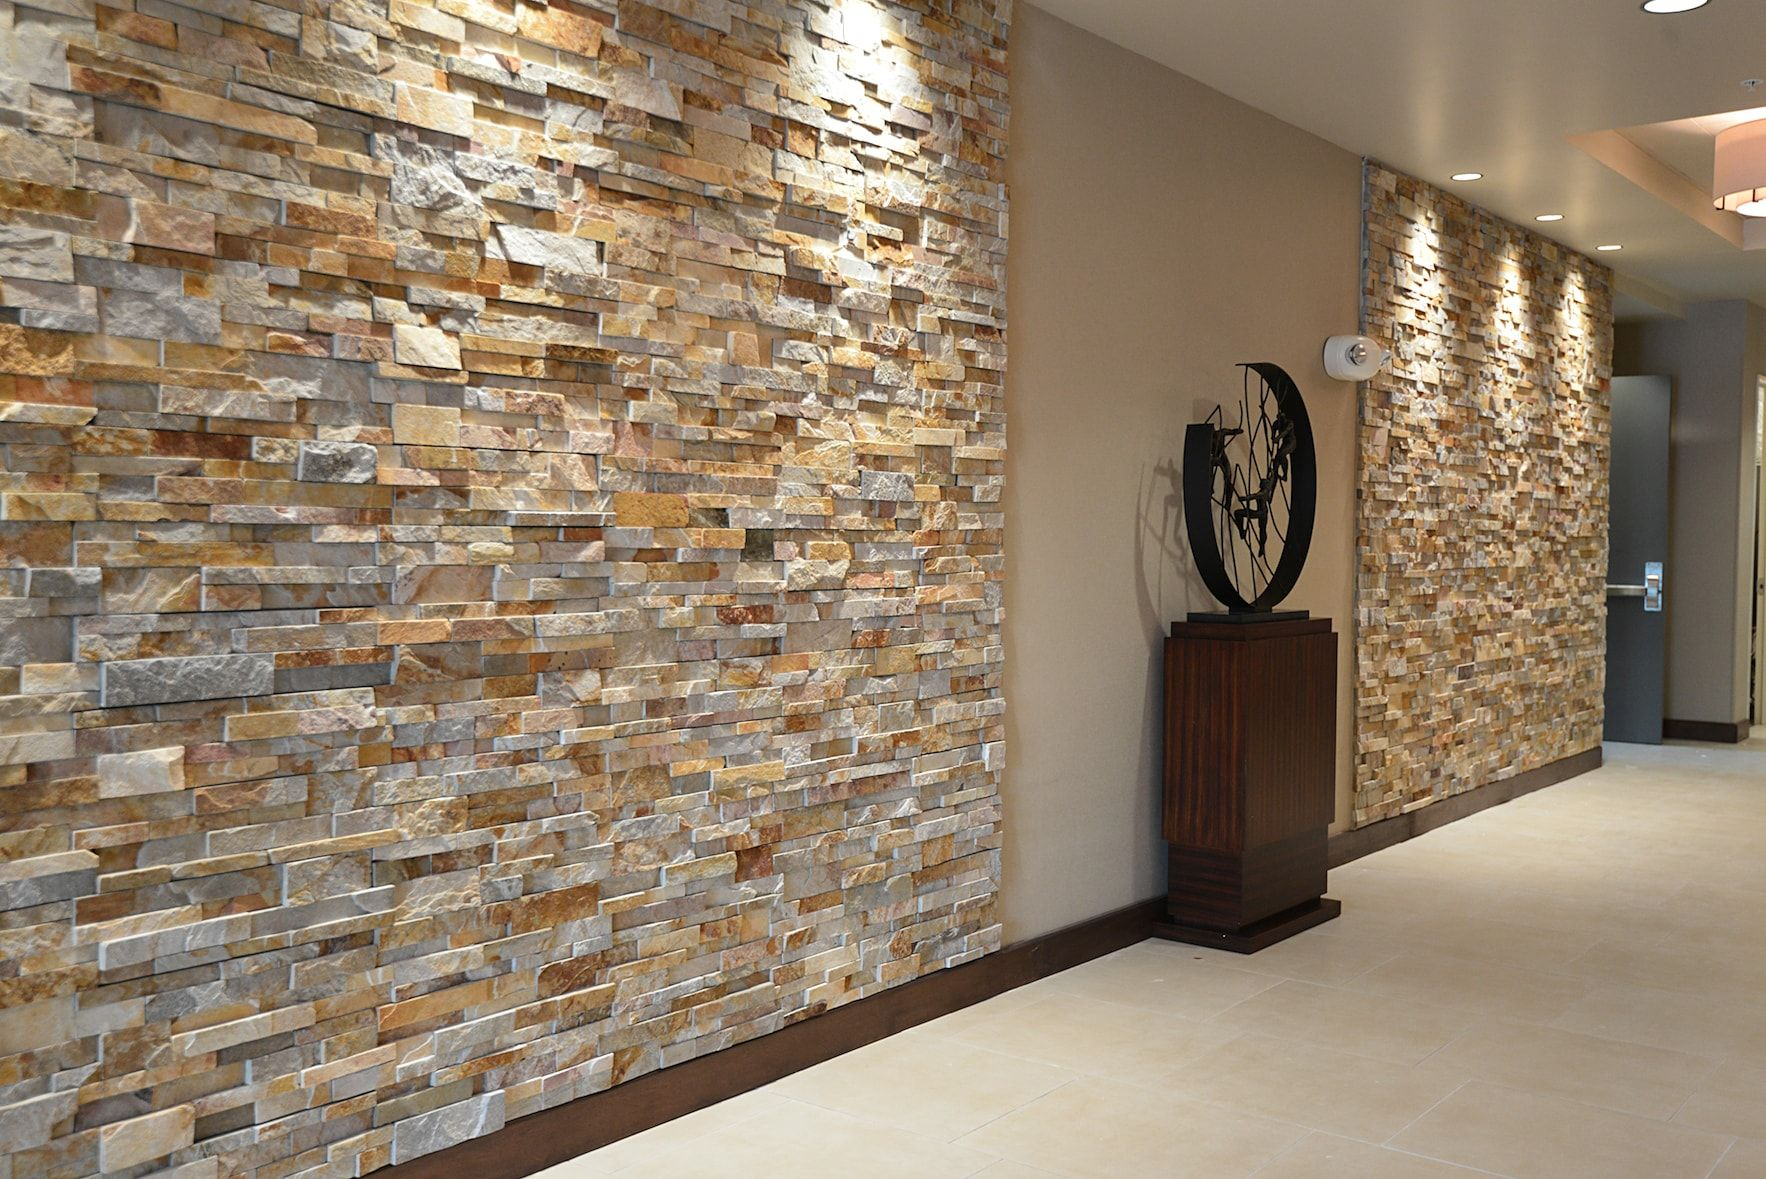 Norstone Blog: Natural Stone Design Ideas and Projects | Stone cladding, Stone  wall cladding, Natural stone cladding